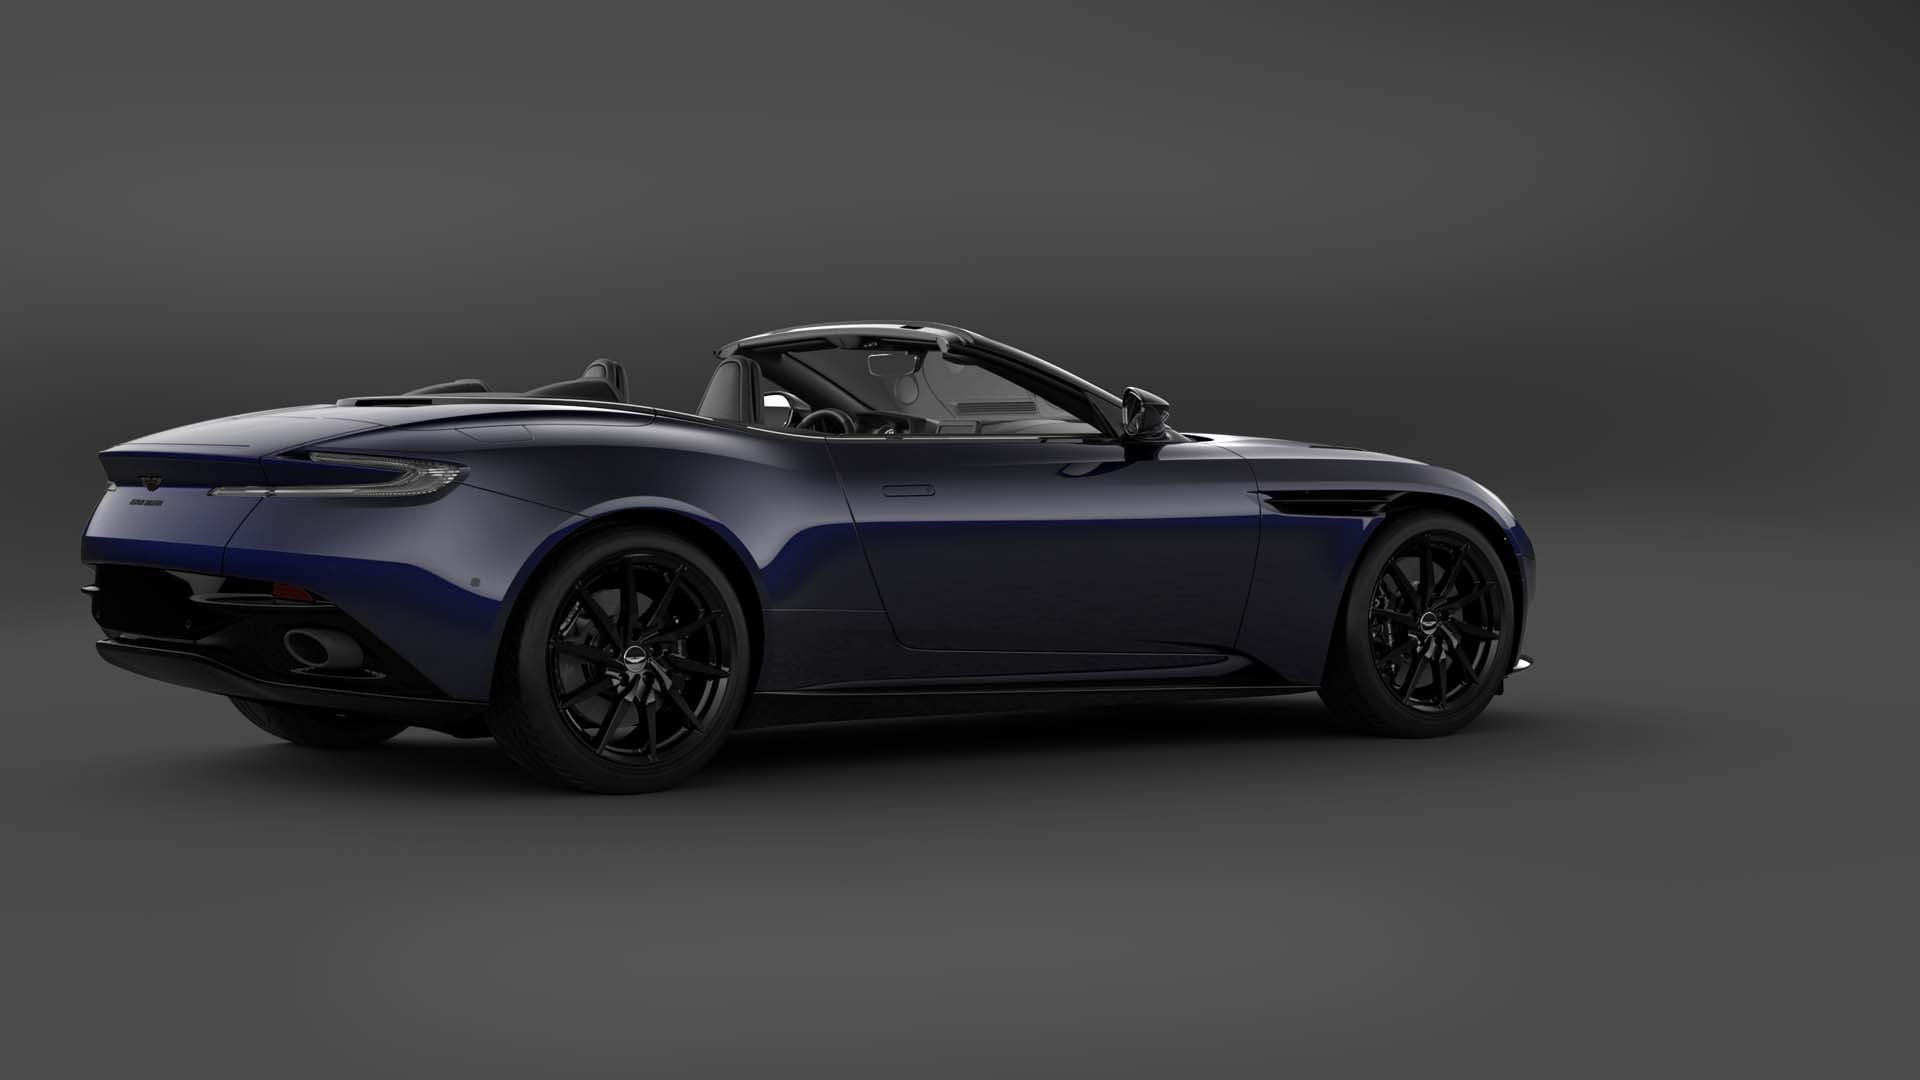 2021 Aston Martin DB11 V8 Volante Shadow Edition